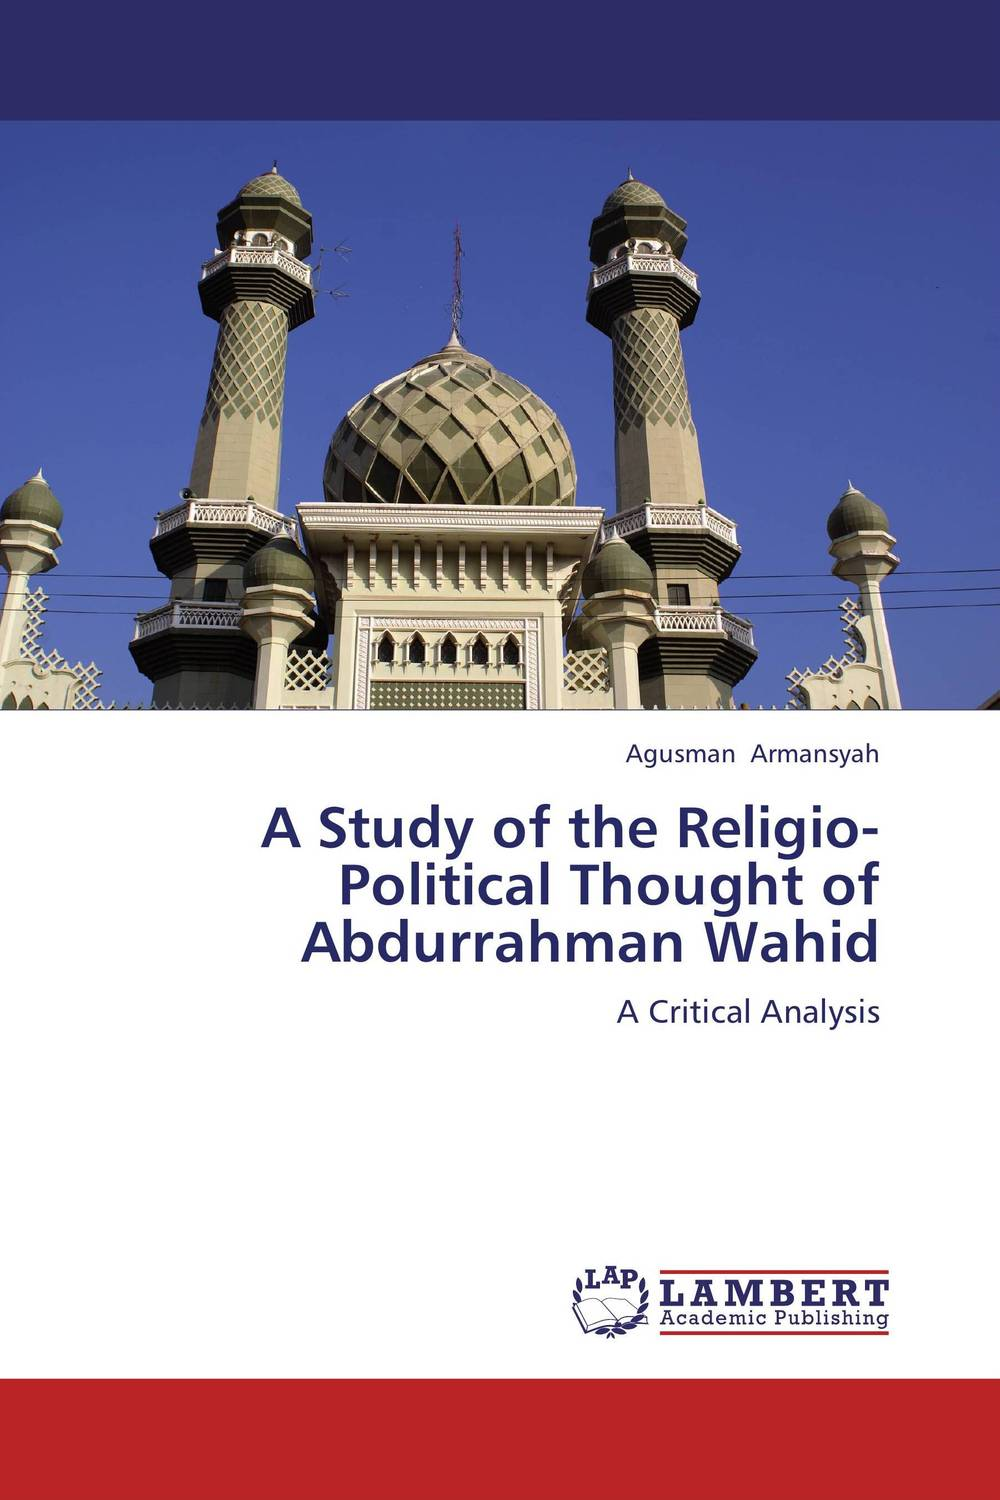 A Study of the Religio-Political Thought of Abdurrahman Wahid a study of the religio political thought of abdurrahman wahid